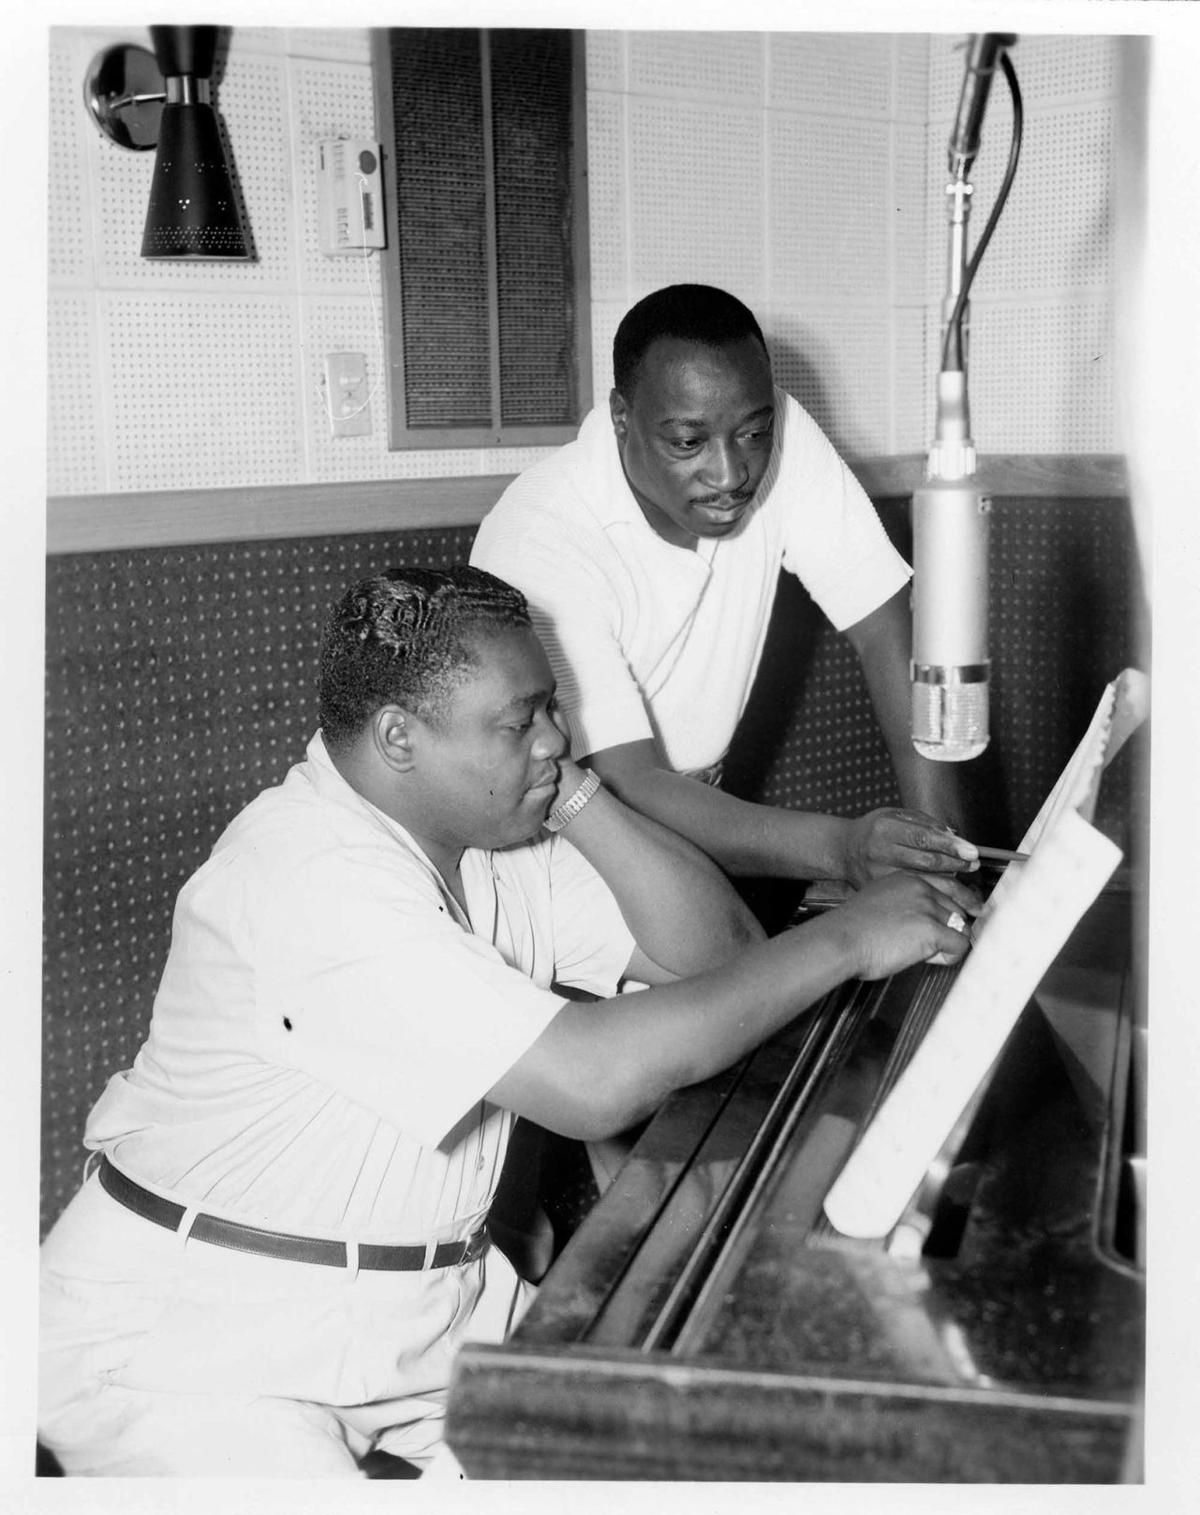 Put up a statue of Fats Domino. Louis Armstrong, too | Letter